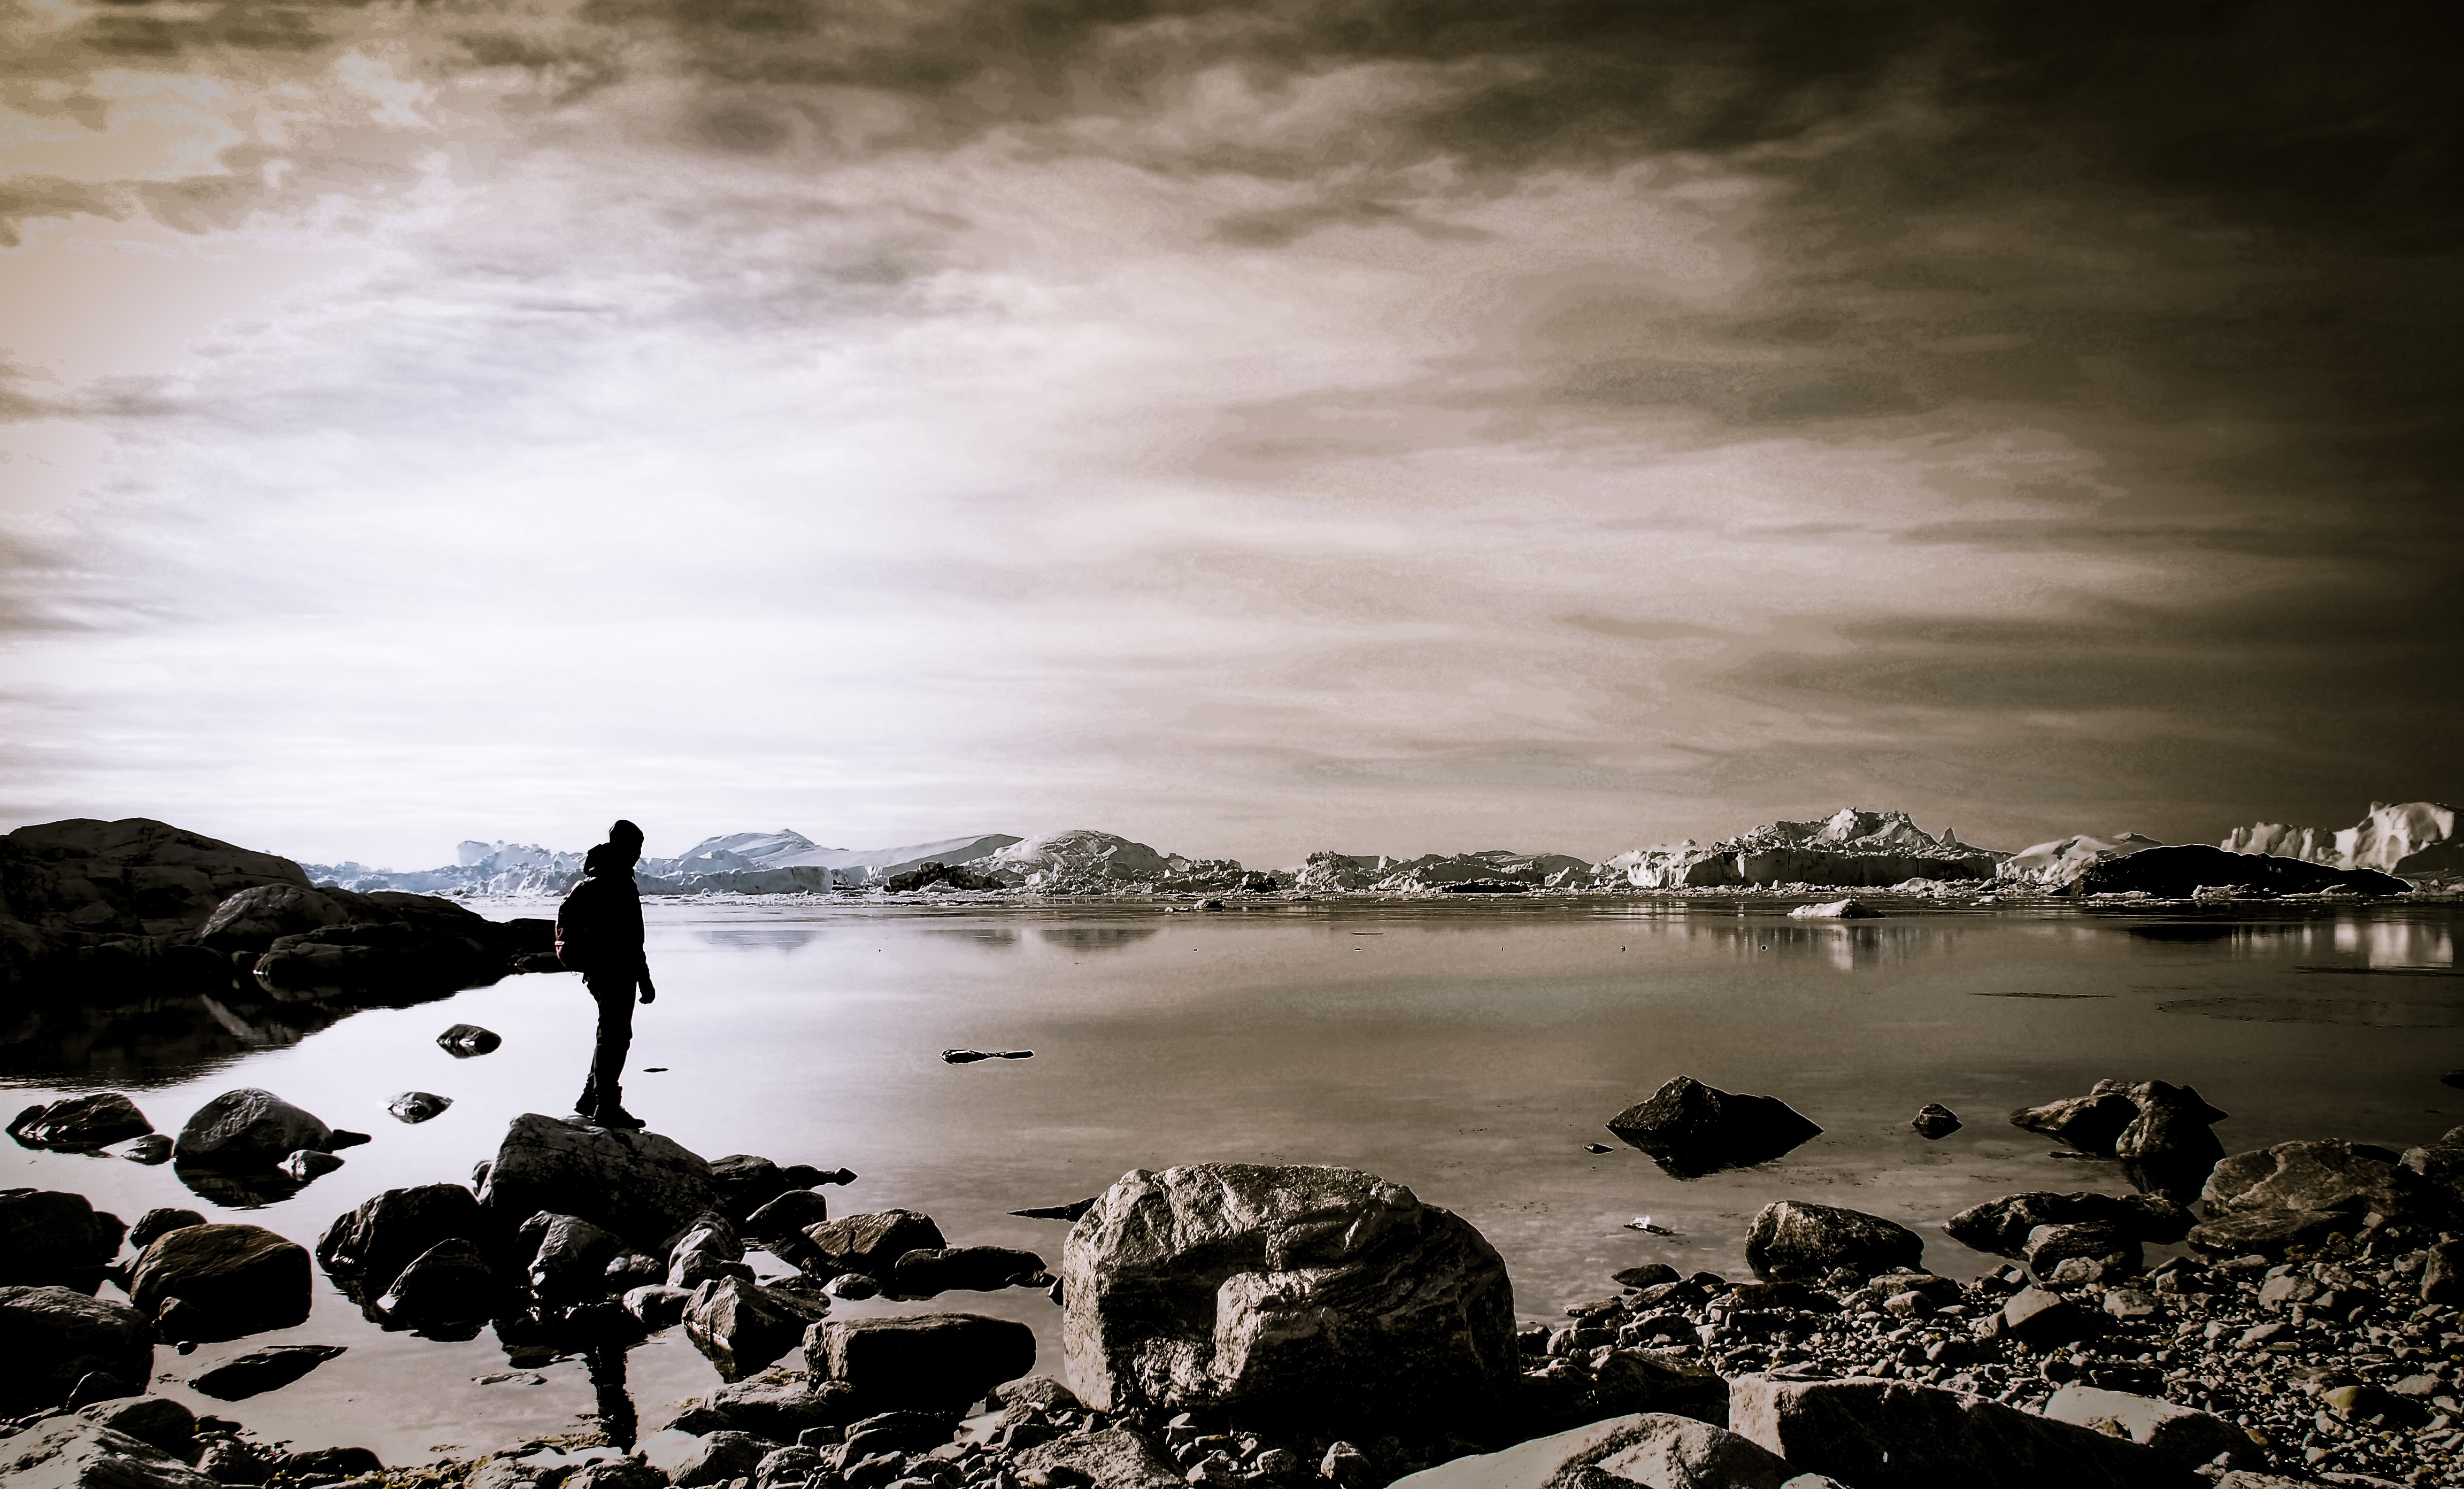 person standing on rock near body of water